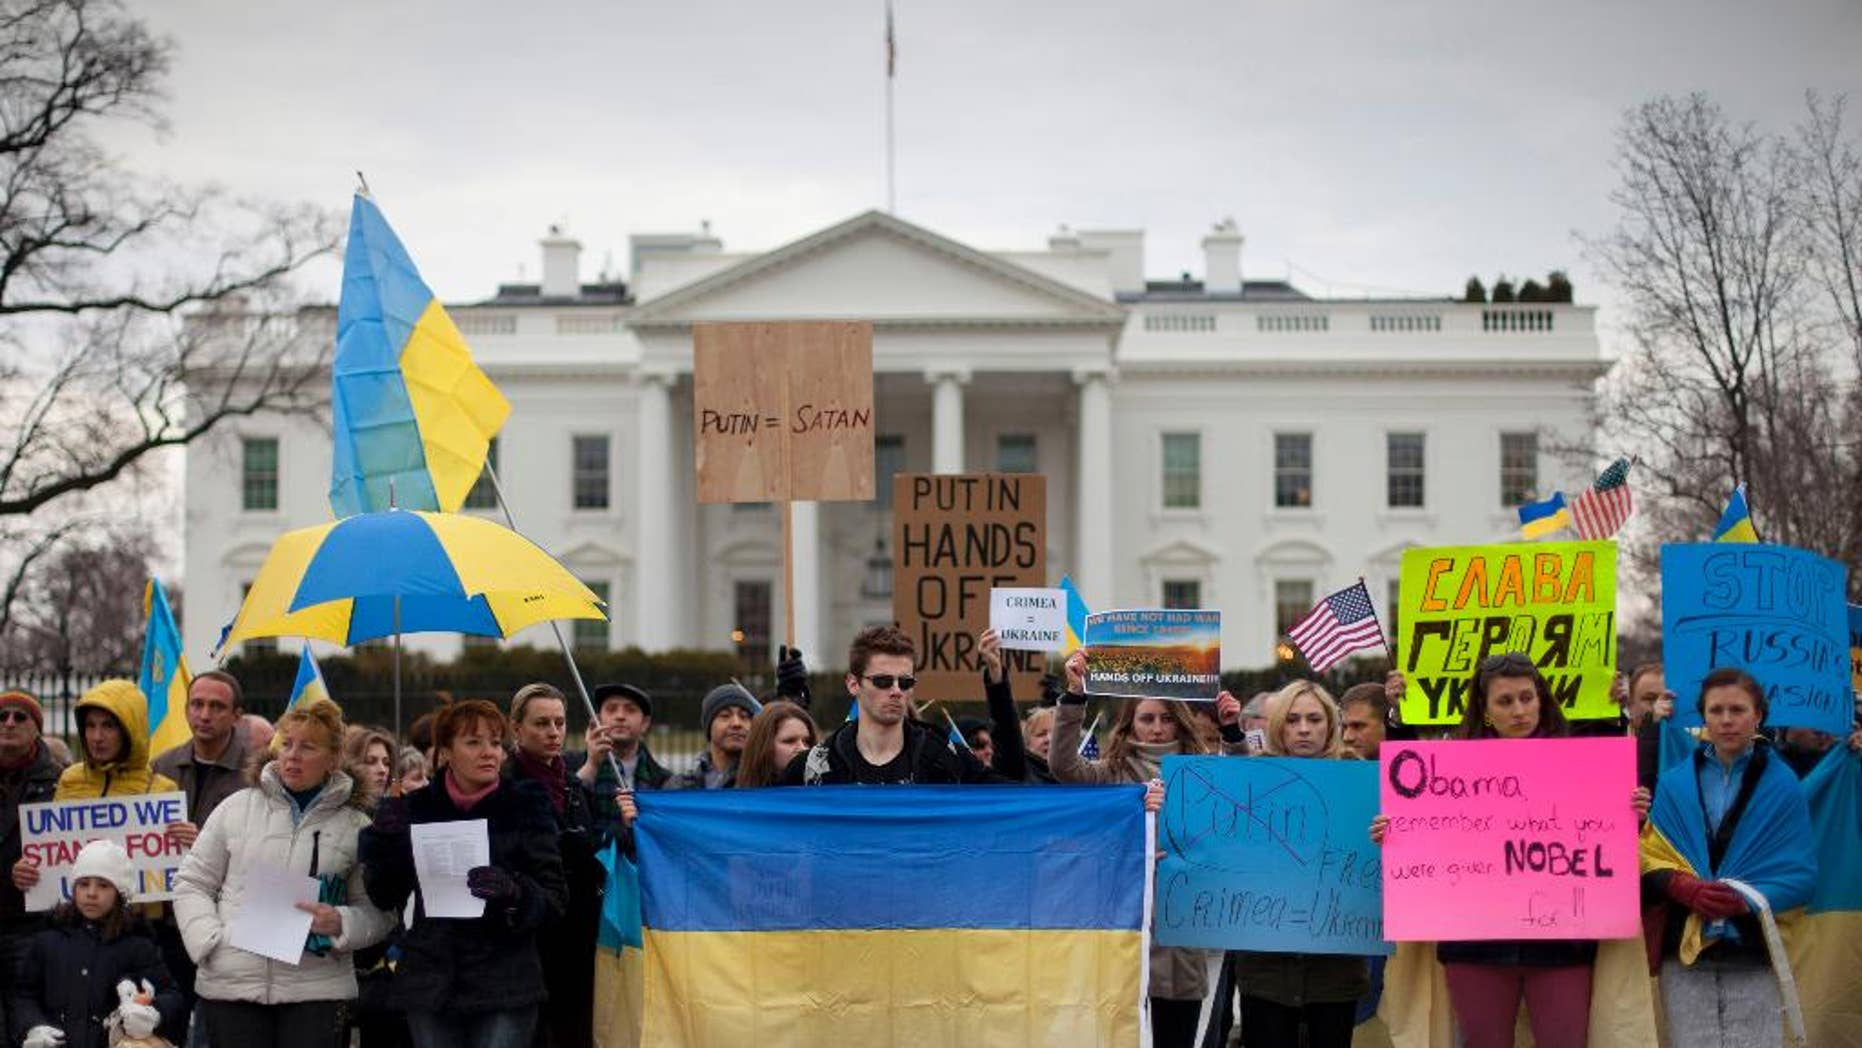 Demonstrators gather outside the White House in Washington, Saturday, March 1, 2014. Russian troops took over Crimea as the parliament in Moscow gave President Vladimir Putin a green light Saturday to use the military to protect Russian interests in Ukraine. (AP Photo/Pablo Martinez Monsivais)